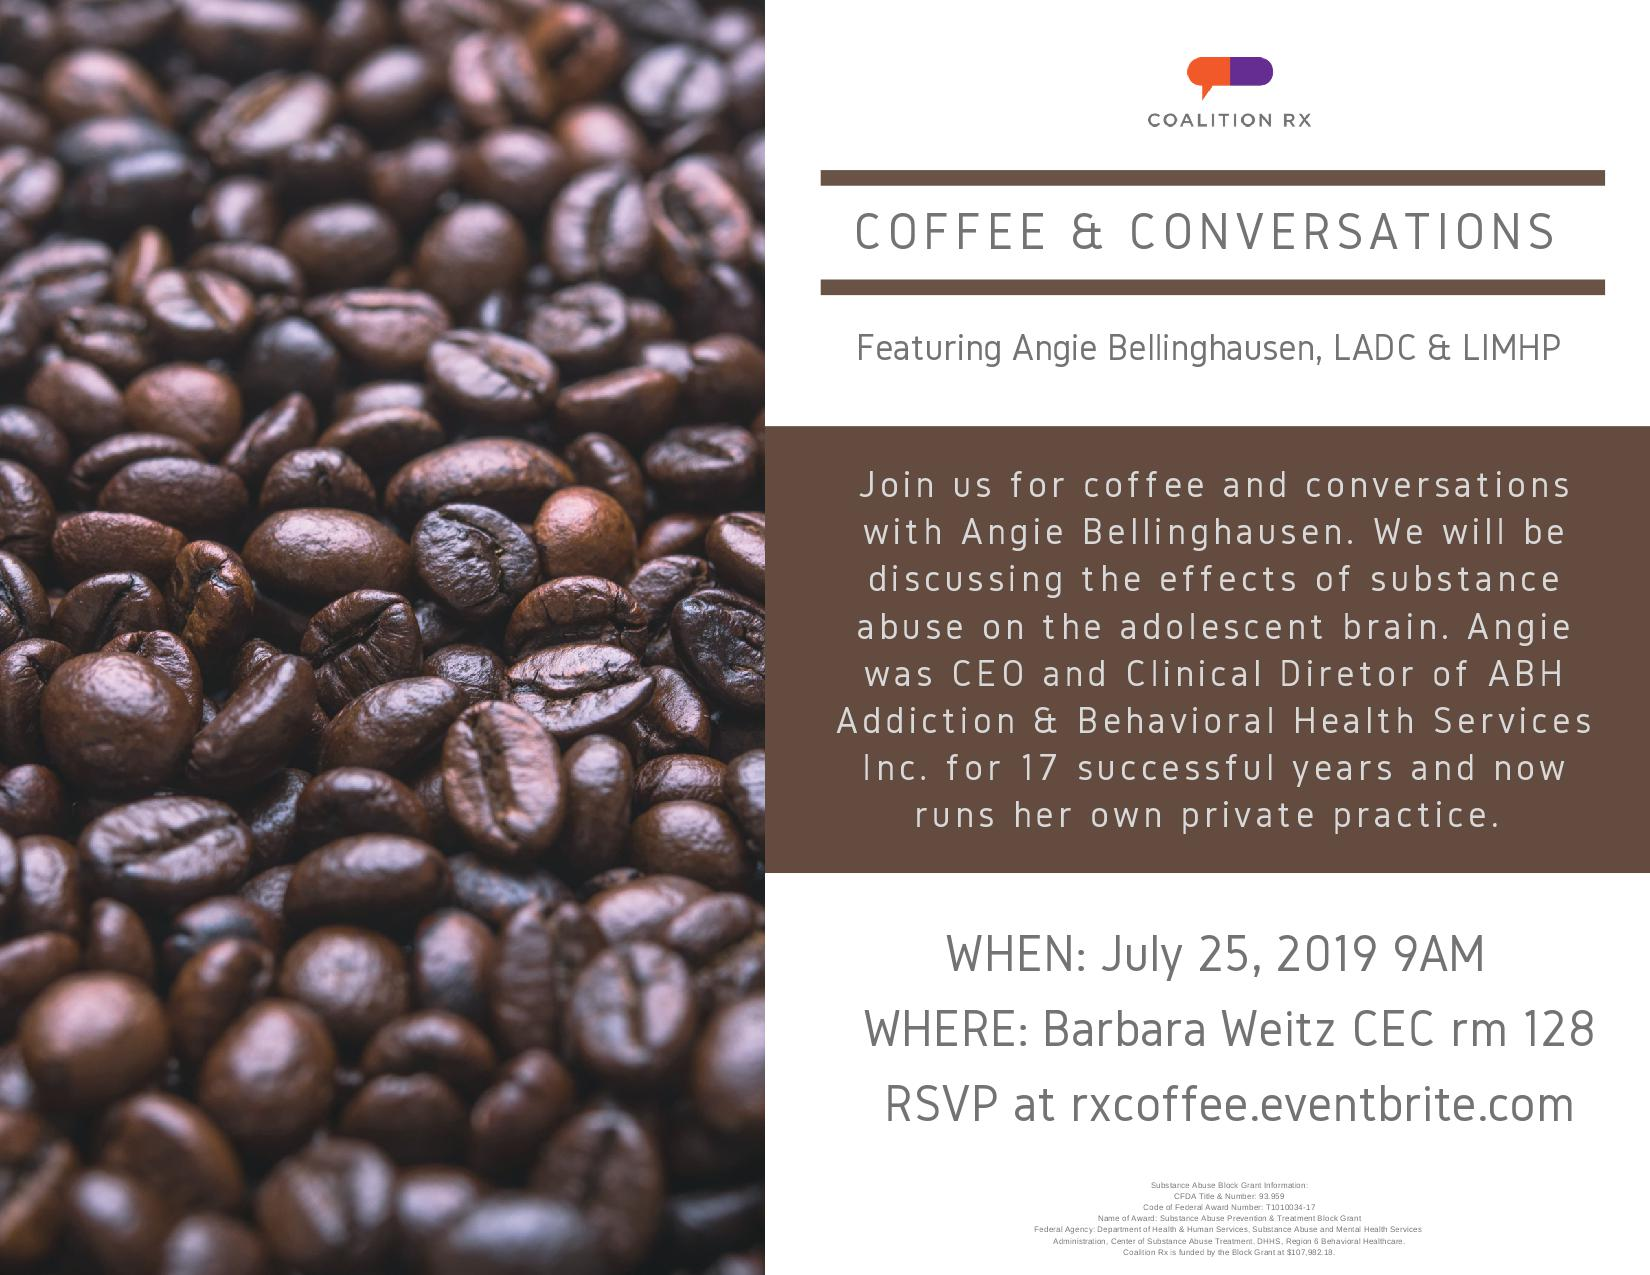 Coffee and Conversations with Angie Bellinghausen